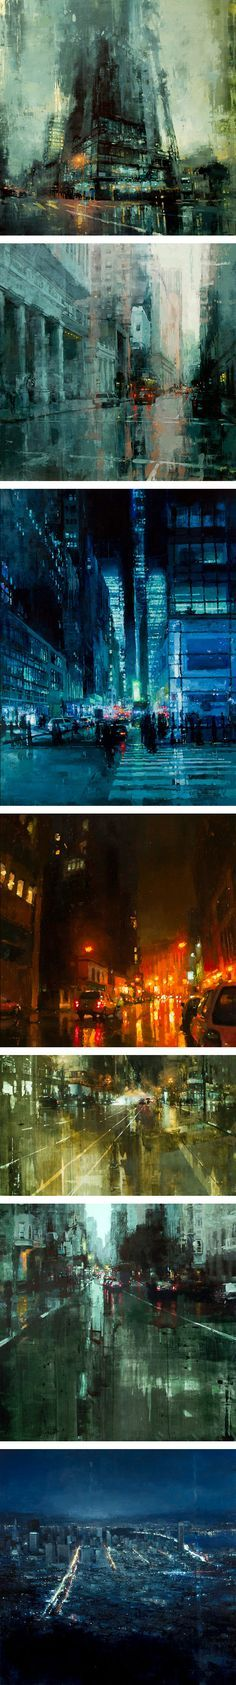 Paisagens urbanas pintadas com óleo por artwork..JR, de Jeremy Mann Lv Jeremy / Cityscapes Painted with Oils by Jeremy Mann Lv Jeremy's artwork..JR